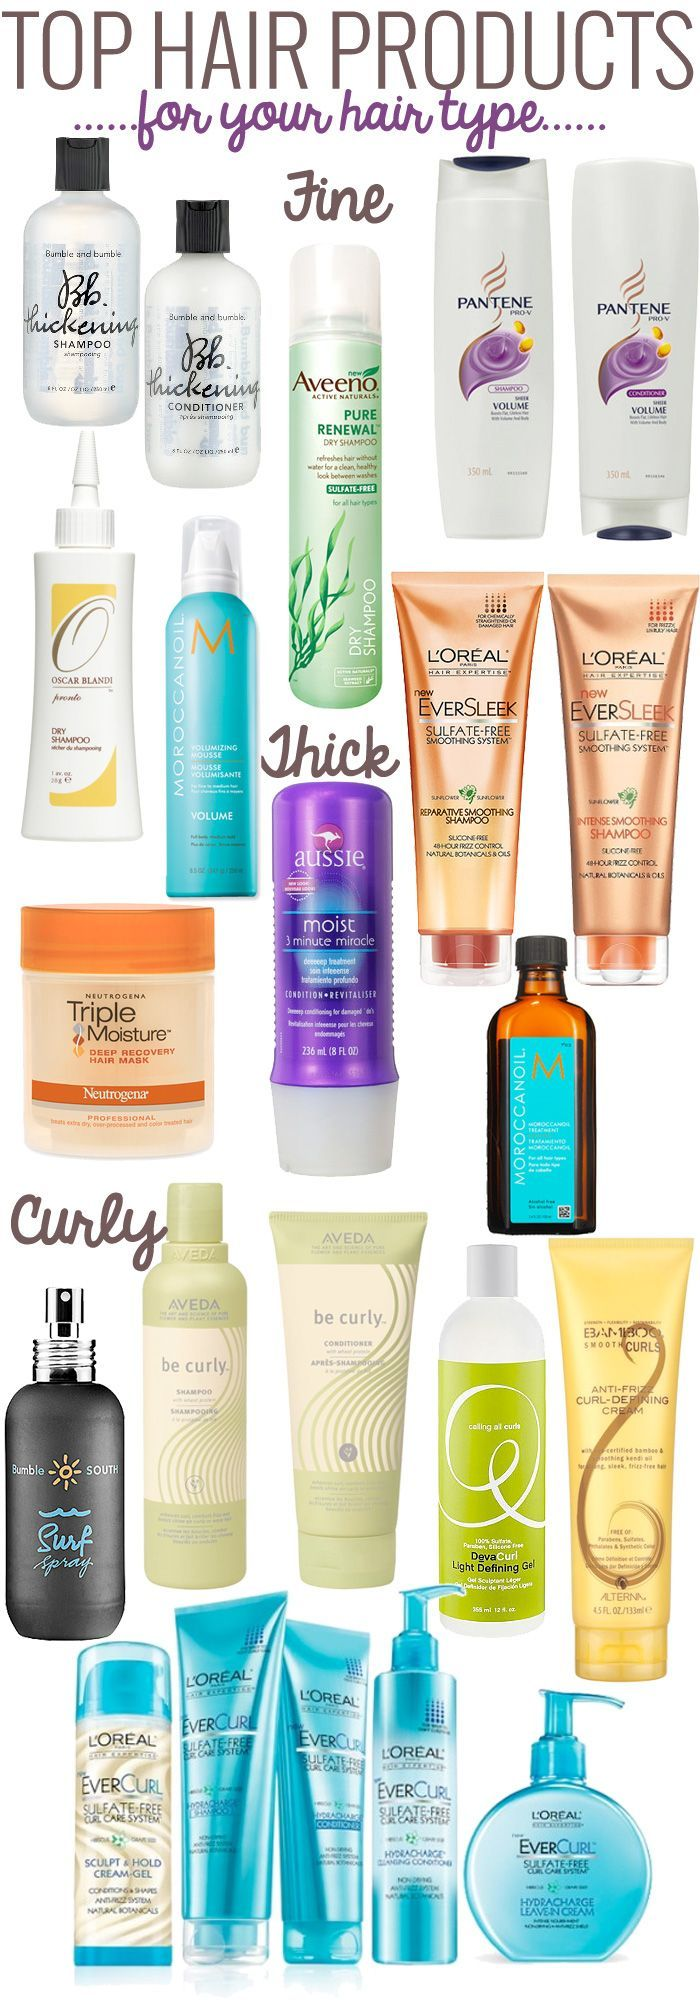 Top Hair Products By Hair Type Top Hairstyles Hair Type Curly